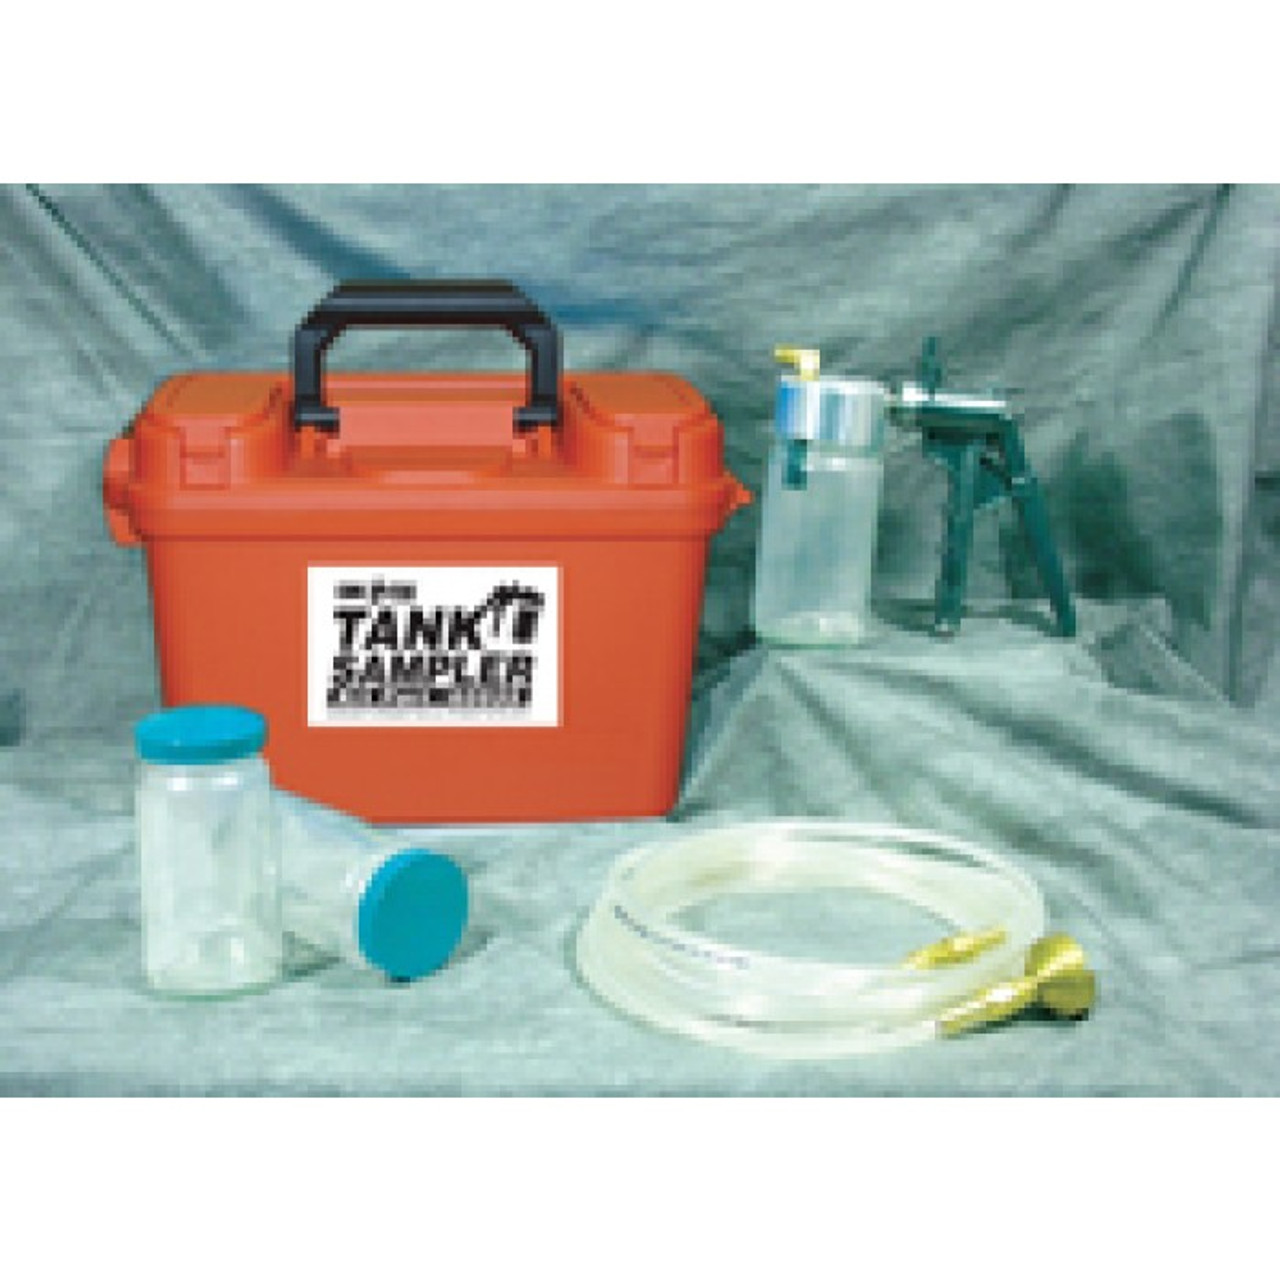 90218 - 3x Shatter-Proof Jars (No Lids) for Tank Sampler Kit